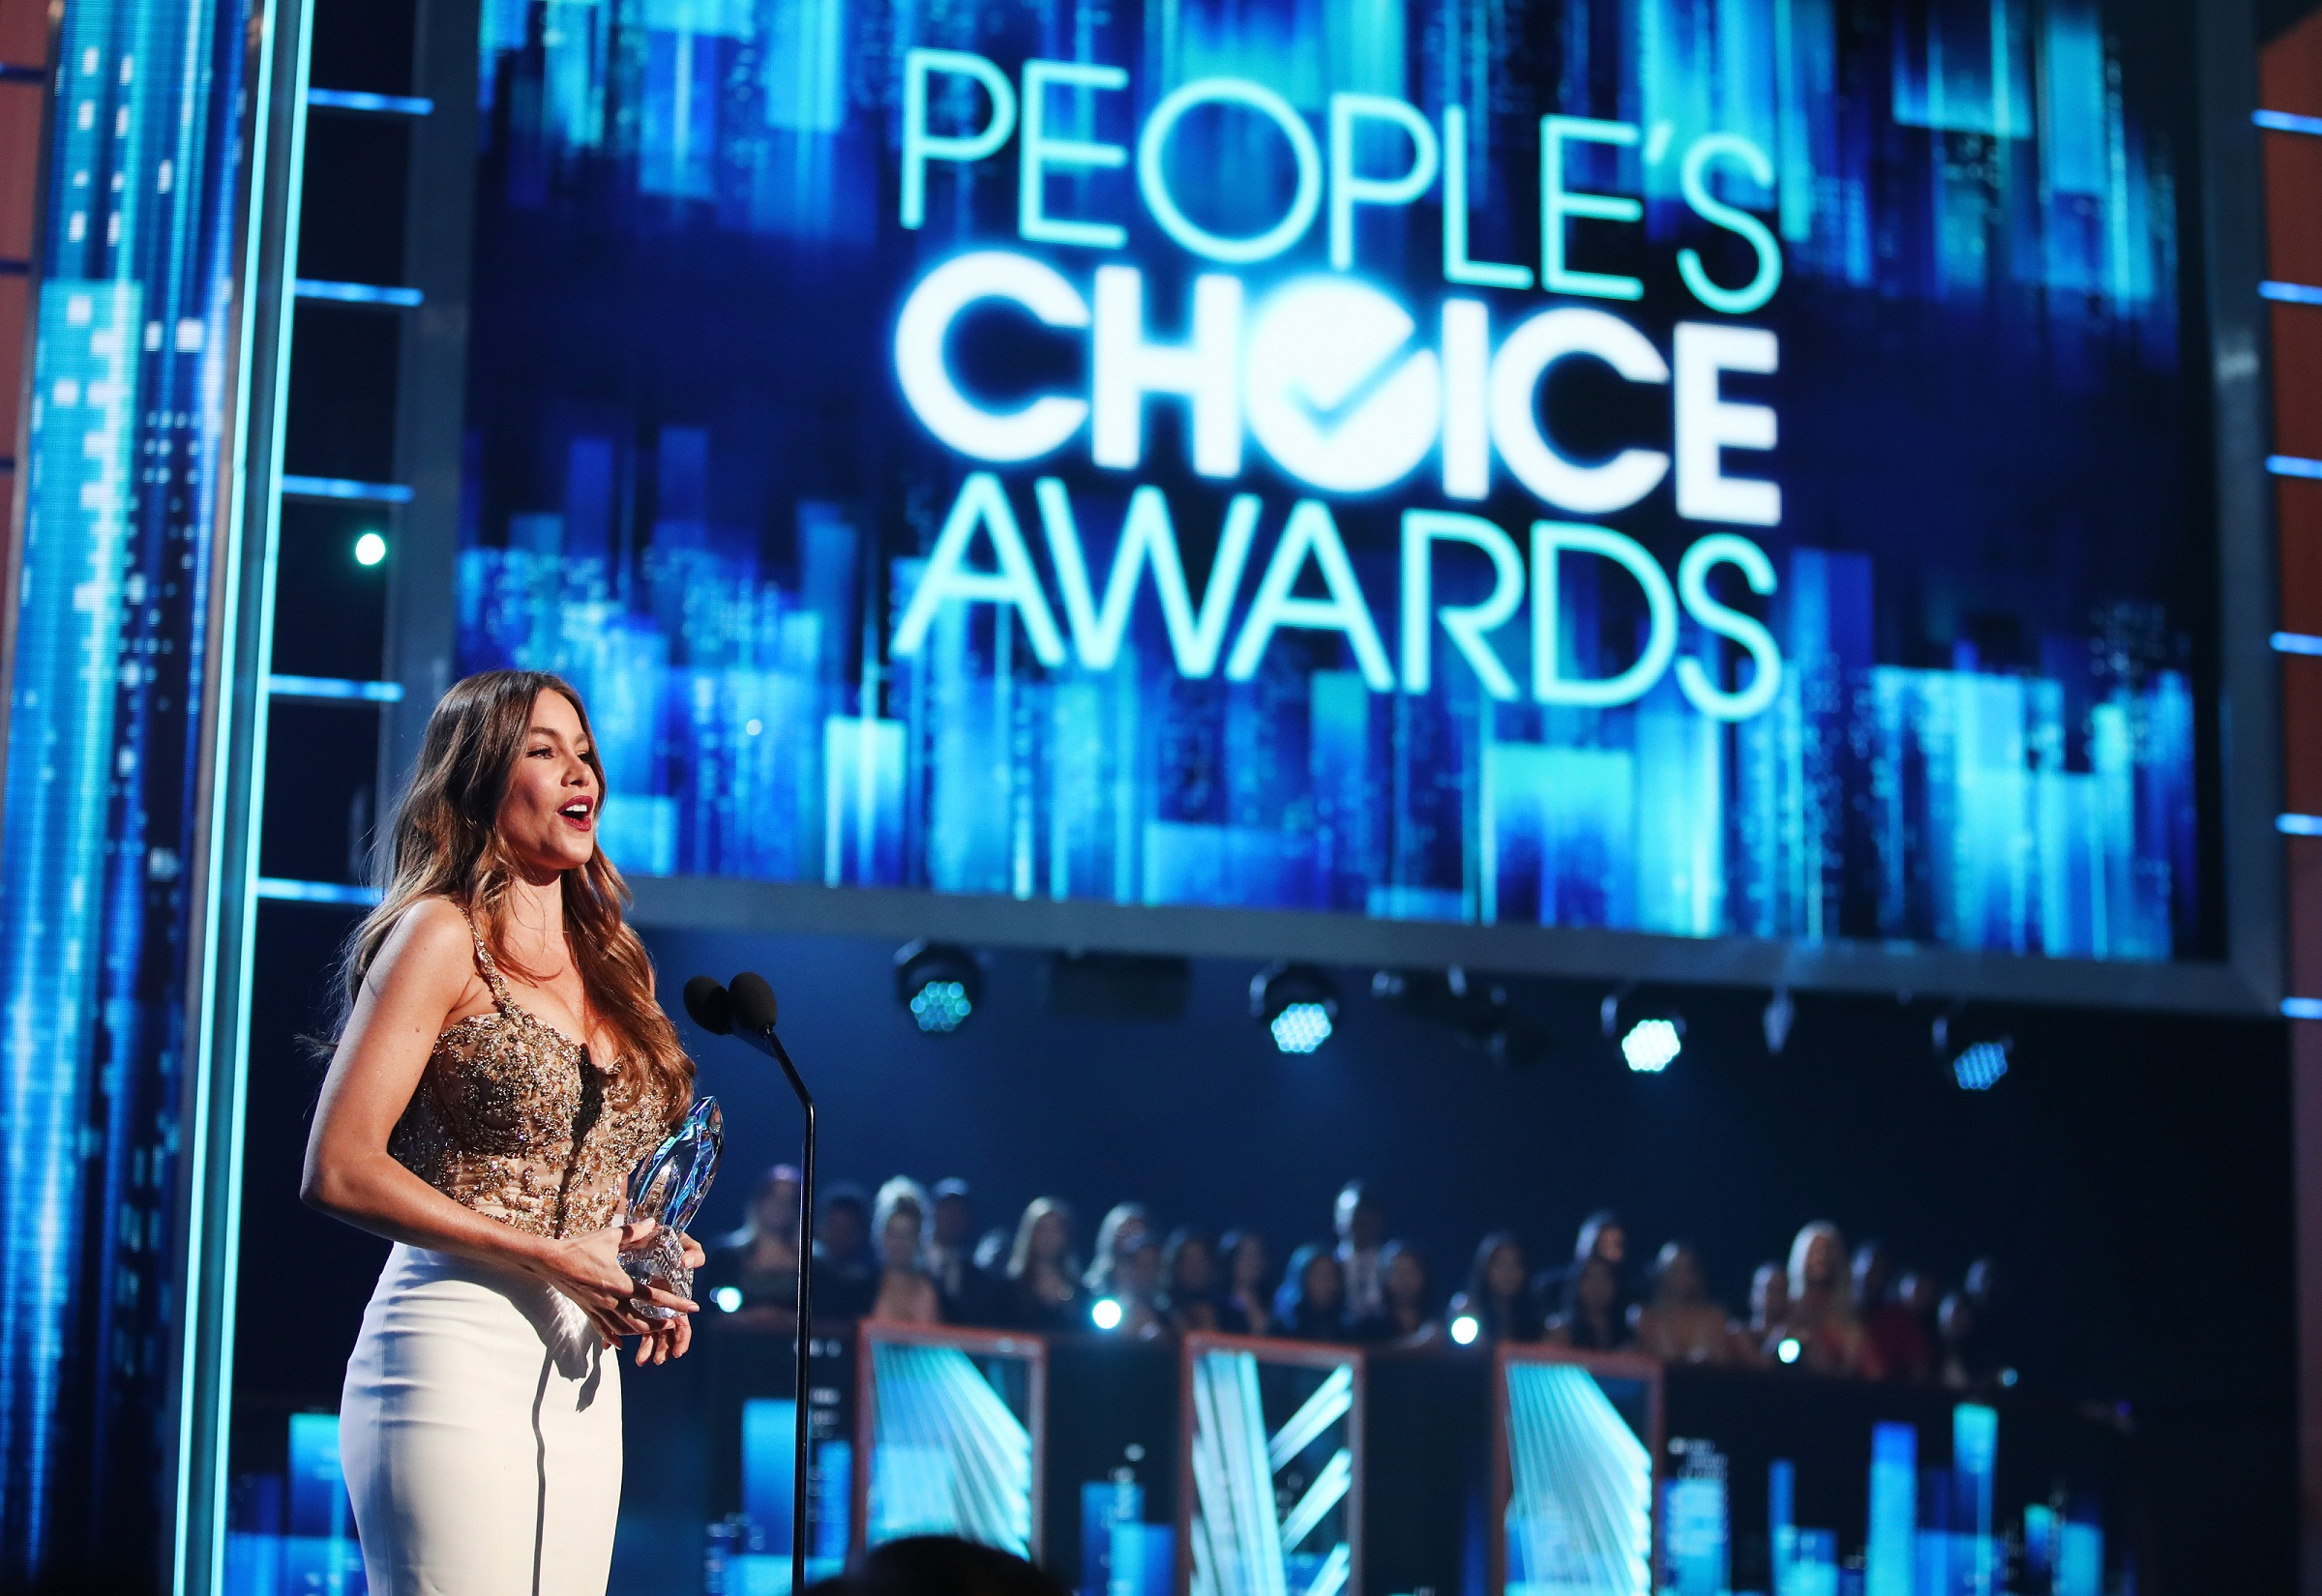 LOS ANGELES, CA - JANUARY 18: Actress Sofia Vergara accepts the Favorite Comedic TV Actress award onstage during the People's Choice Awards 2017 at Microsoft Theater on January 18, 2017 in Los Angeles, California.   Christopher Polk/Getty Images for People's Choice Awards/AFP